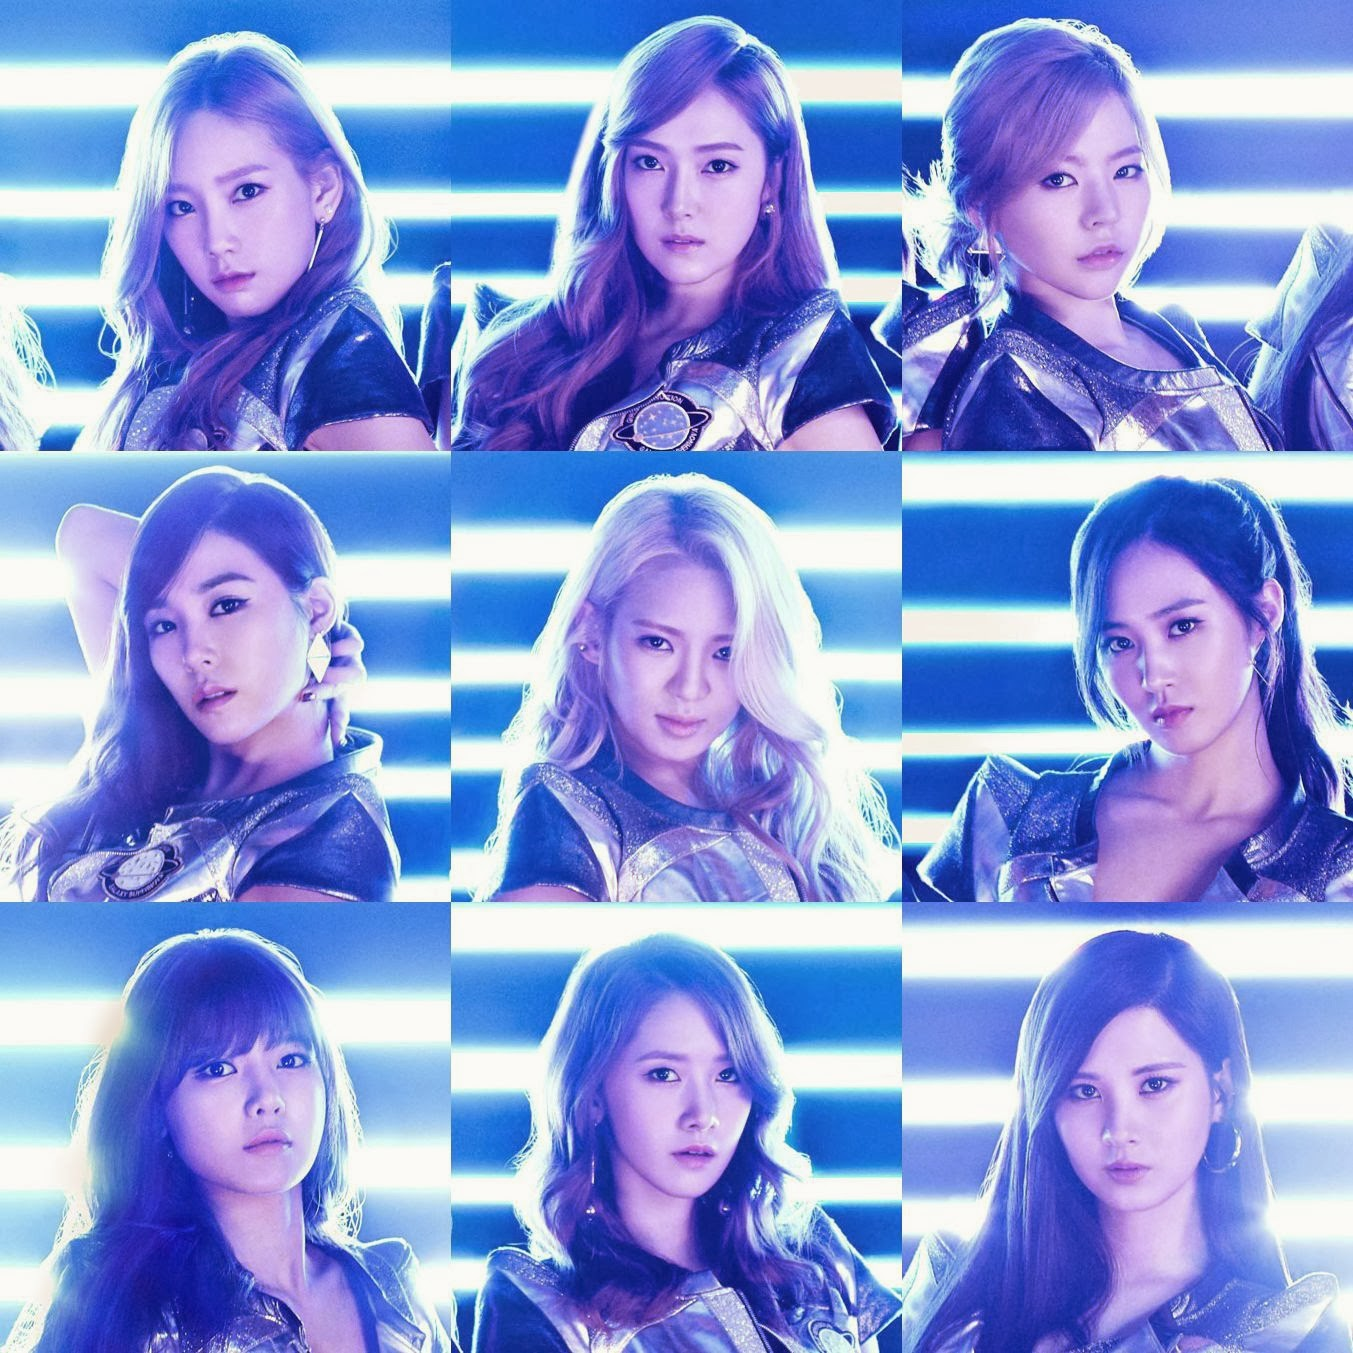 galaxy supernova snsd meme - photo #14